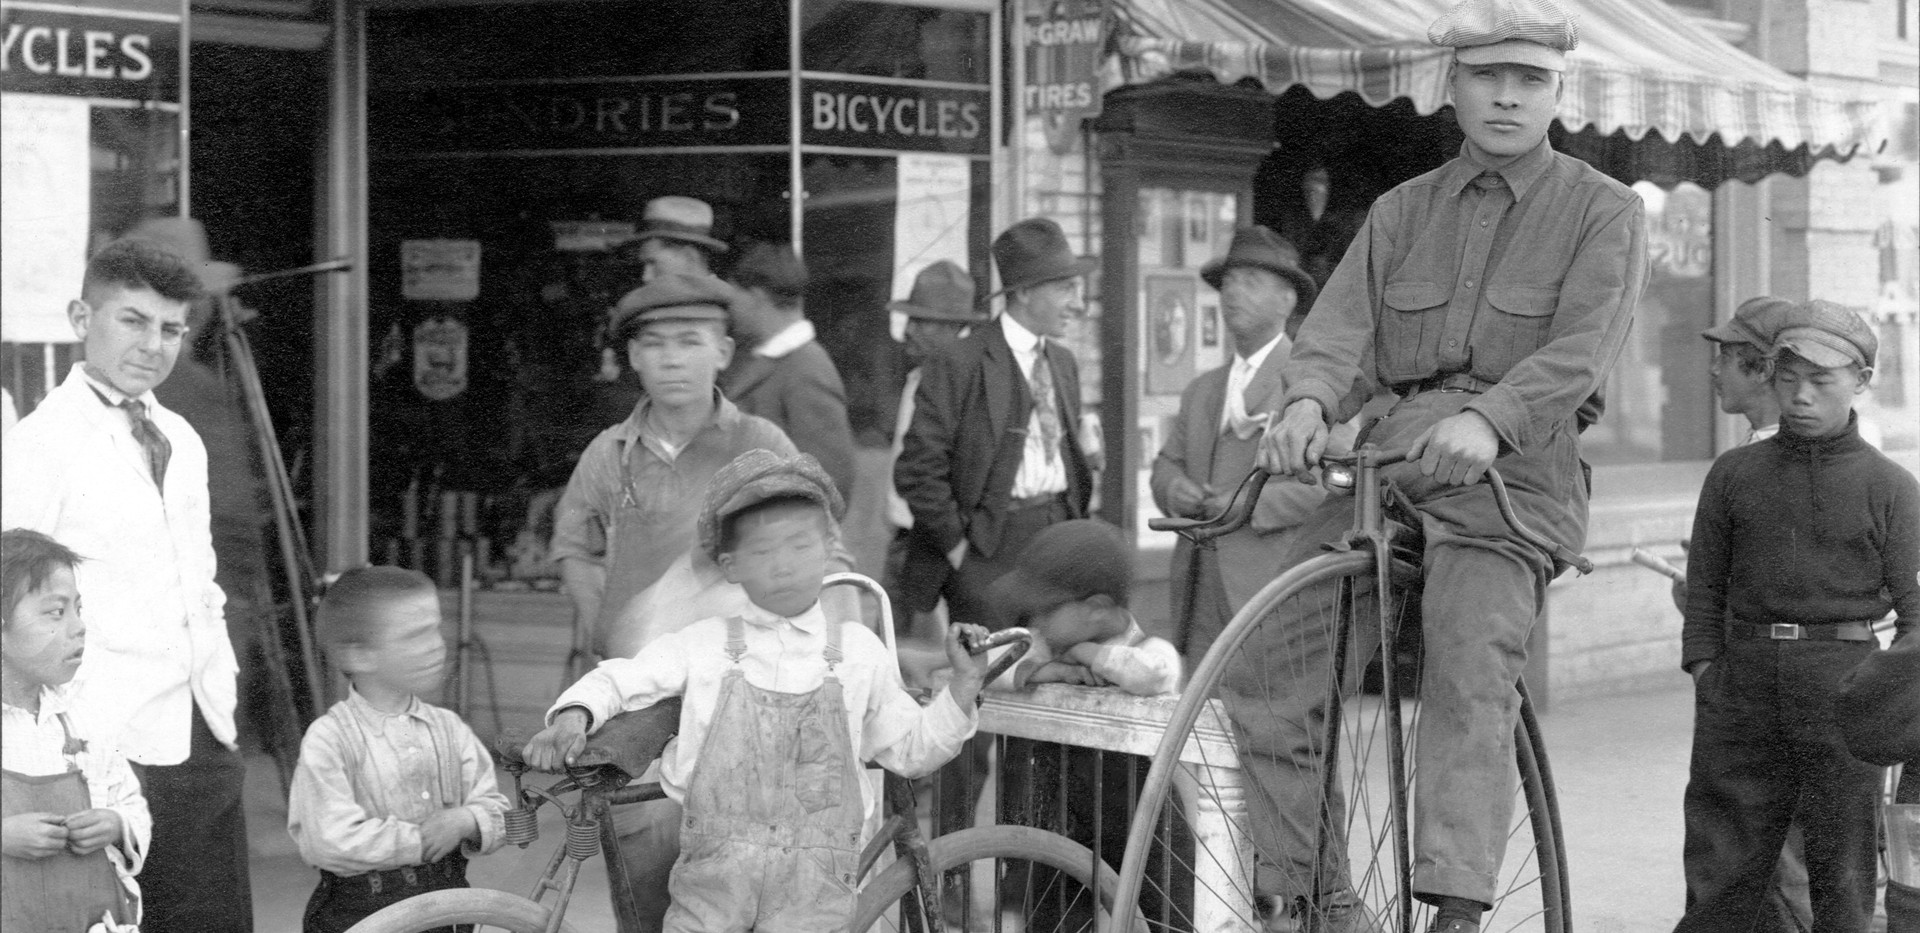 Nakamura Cyclery in Fresno's Chinatown, early 20th Century.